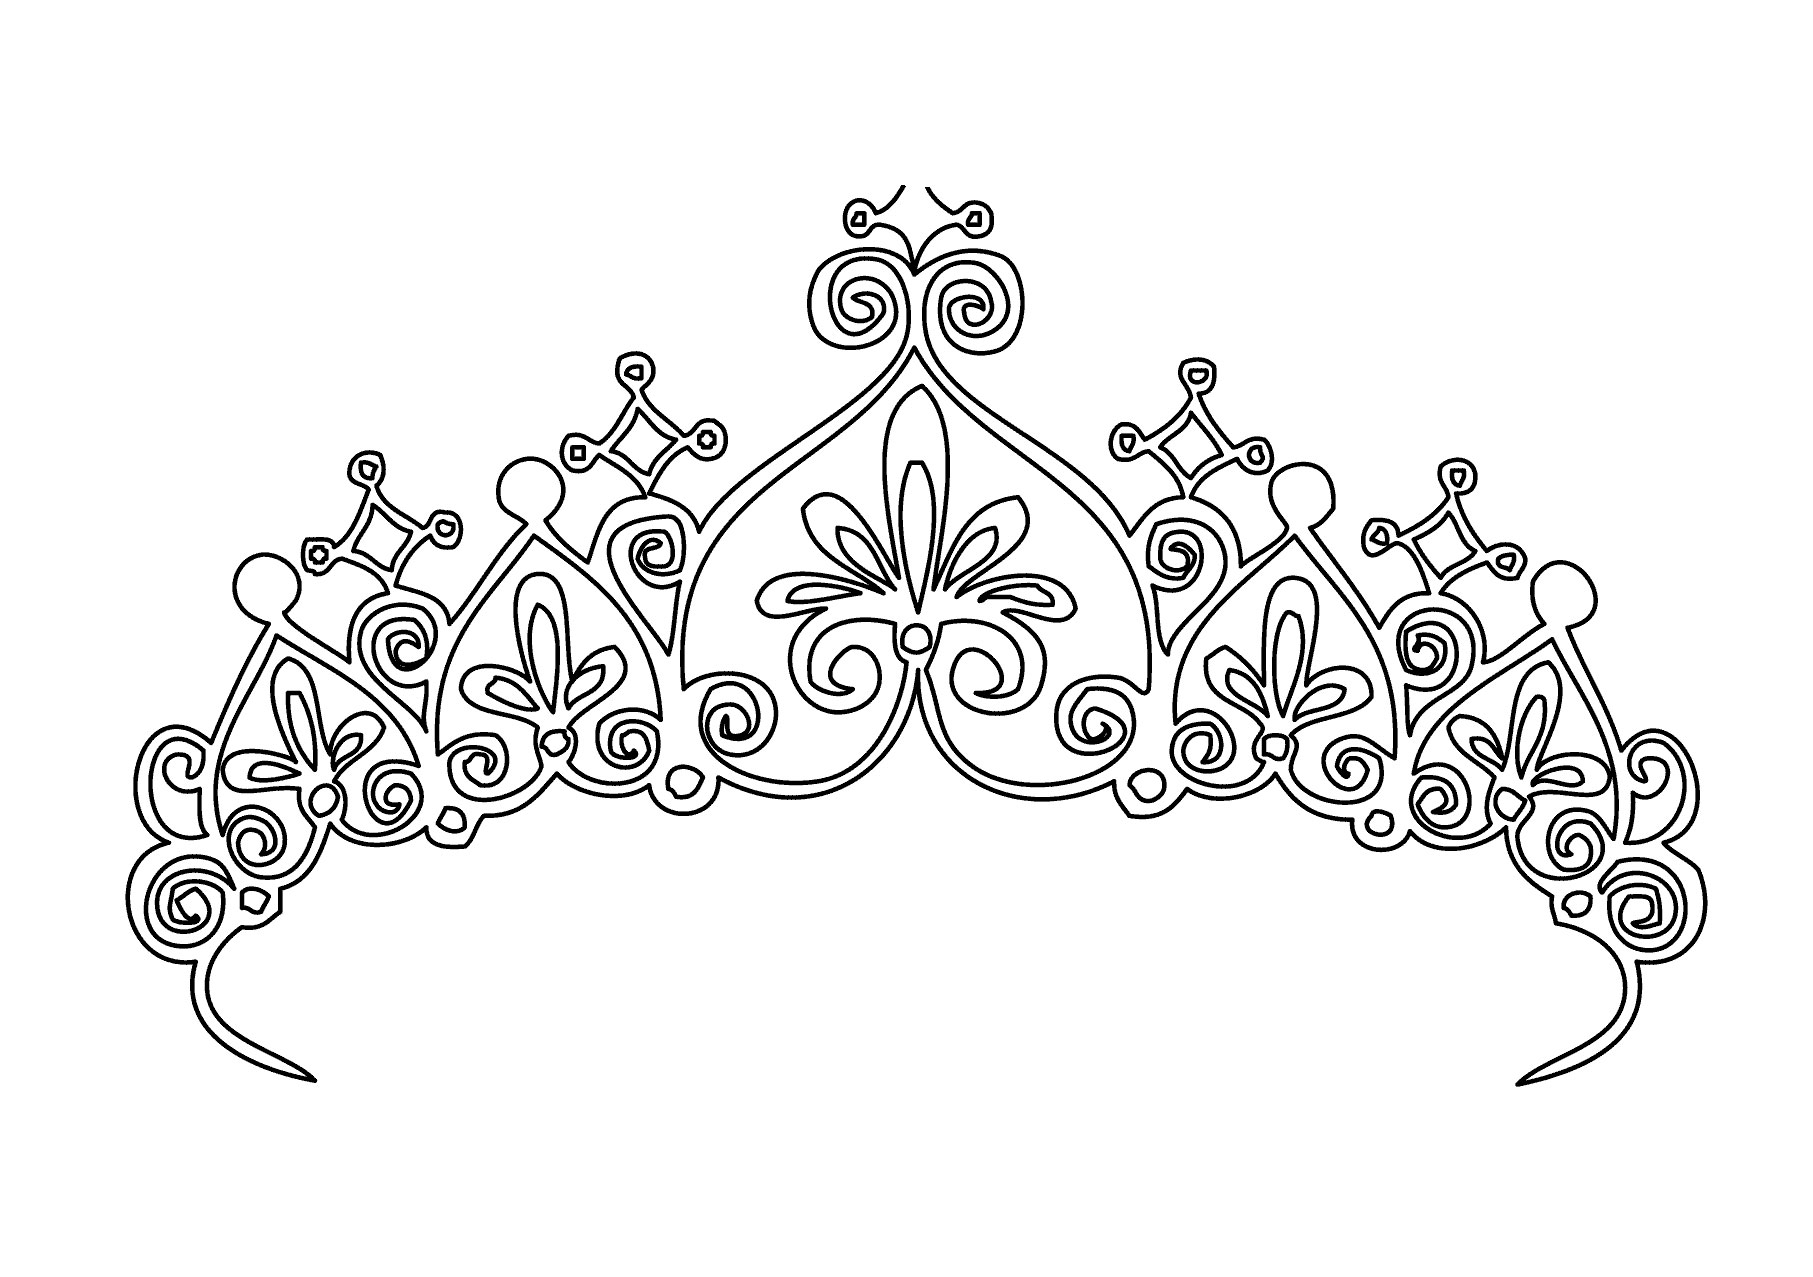 Princess Tiara Coloring Pages Princess Tiara Coloring Pages Free Coloring Sheets